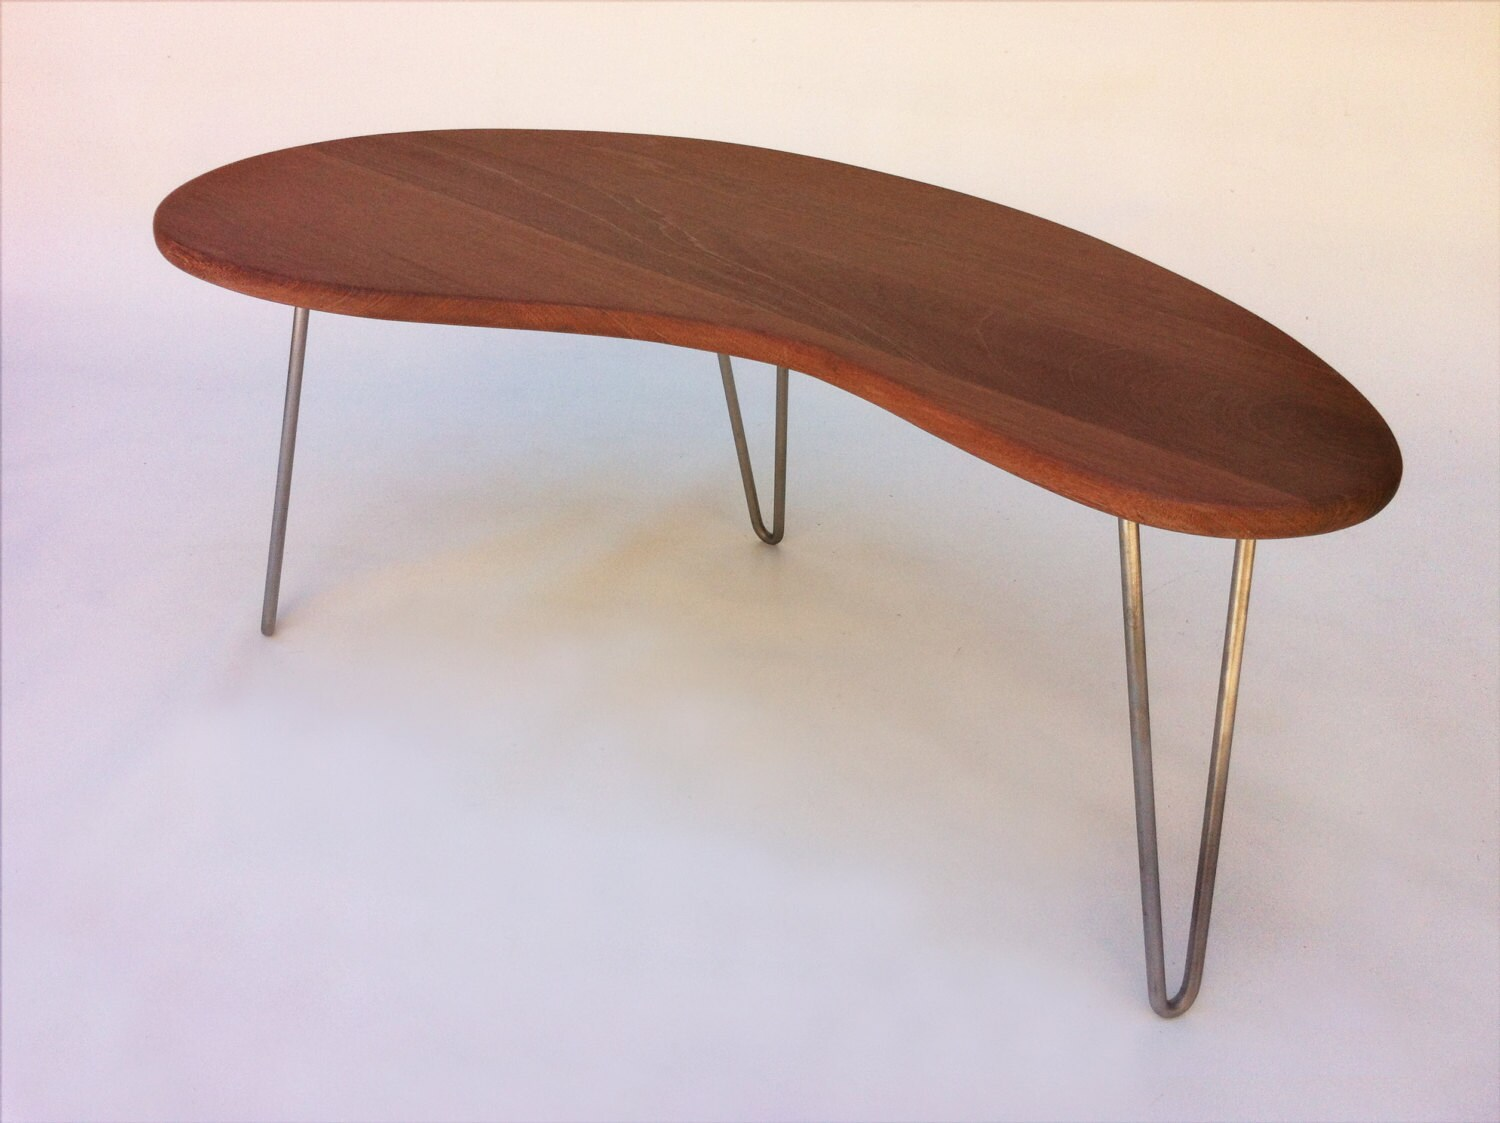 Outdoor IPE Mid Century Modern Coffee or Cocktail Table Kidney